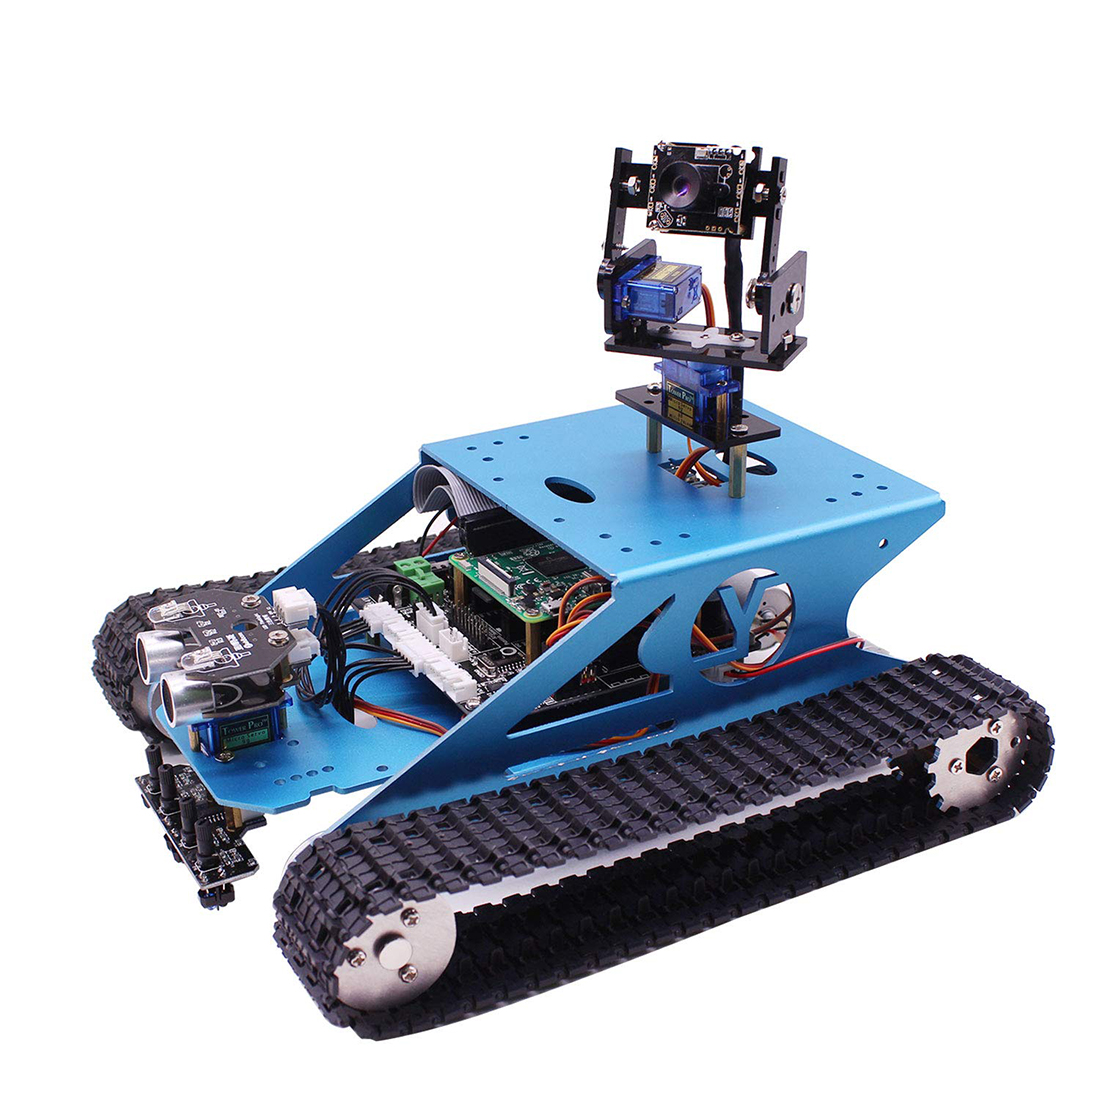 Professional Raspberry Pi Tank Smart Robotic Kit WiFi Wireless Video Programming Electronic Toy DIY Robot Kit For Kids Adults